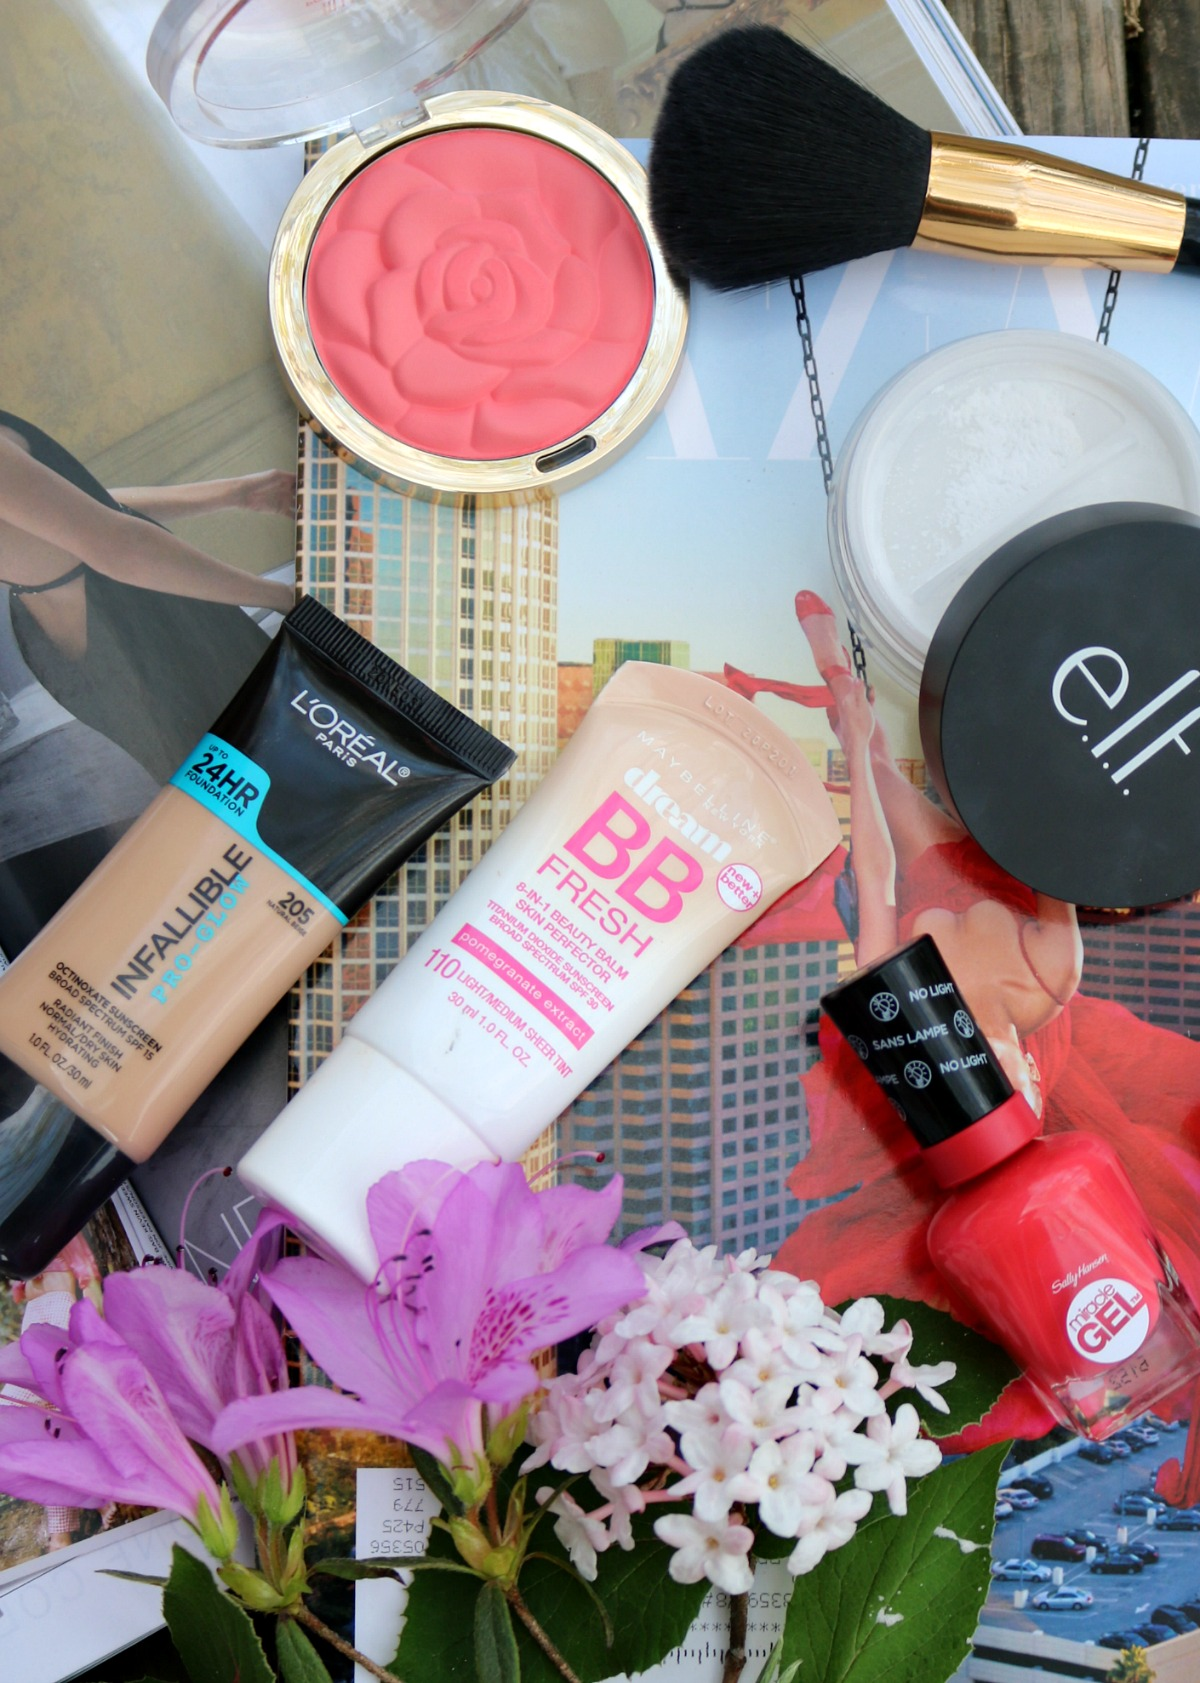 Spring Drugstore Makeup Favorites I DreaminLace.com #SpringMakeup #Makeup